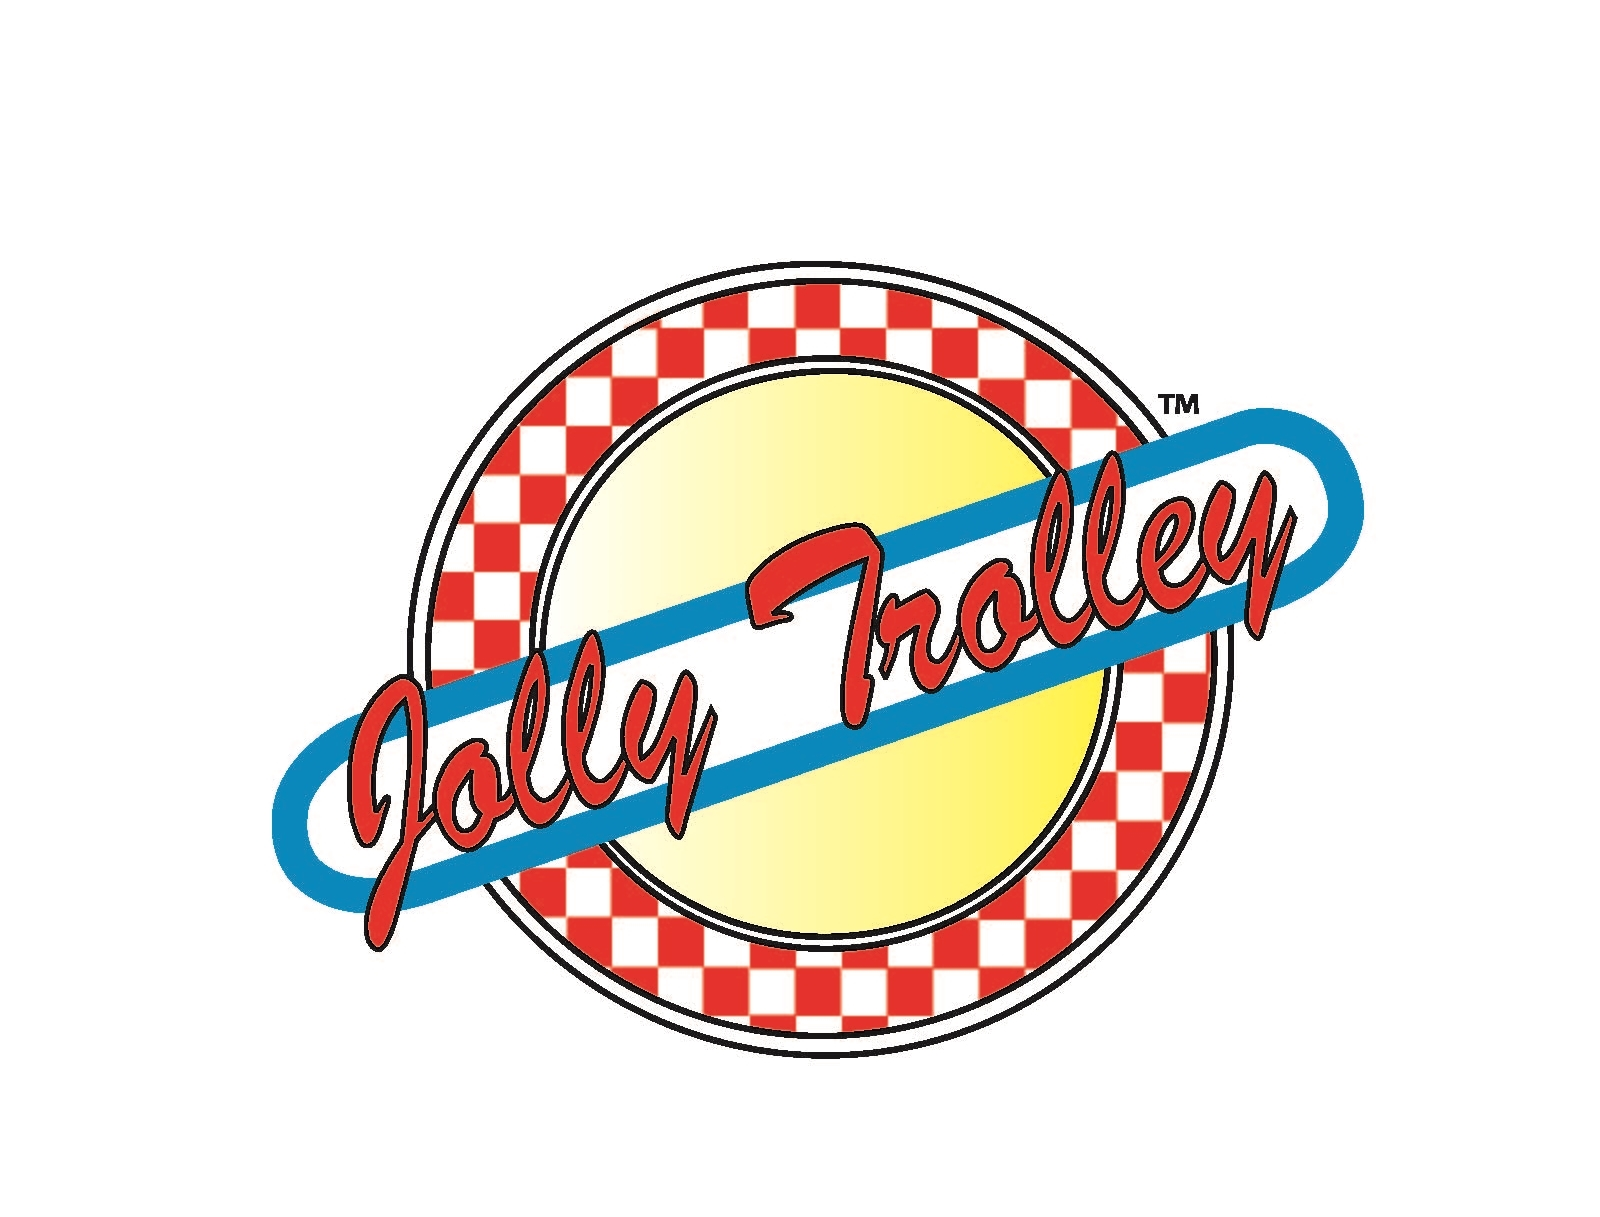 Jolly Trolley logo color with TM